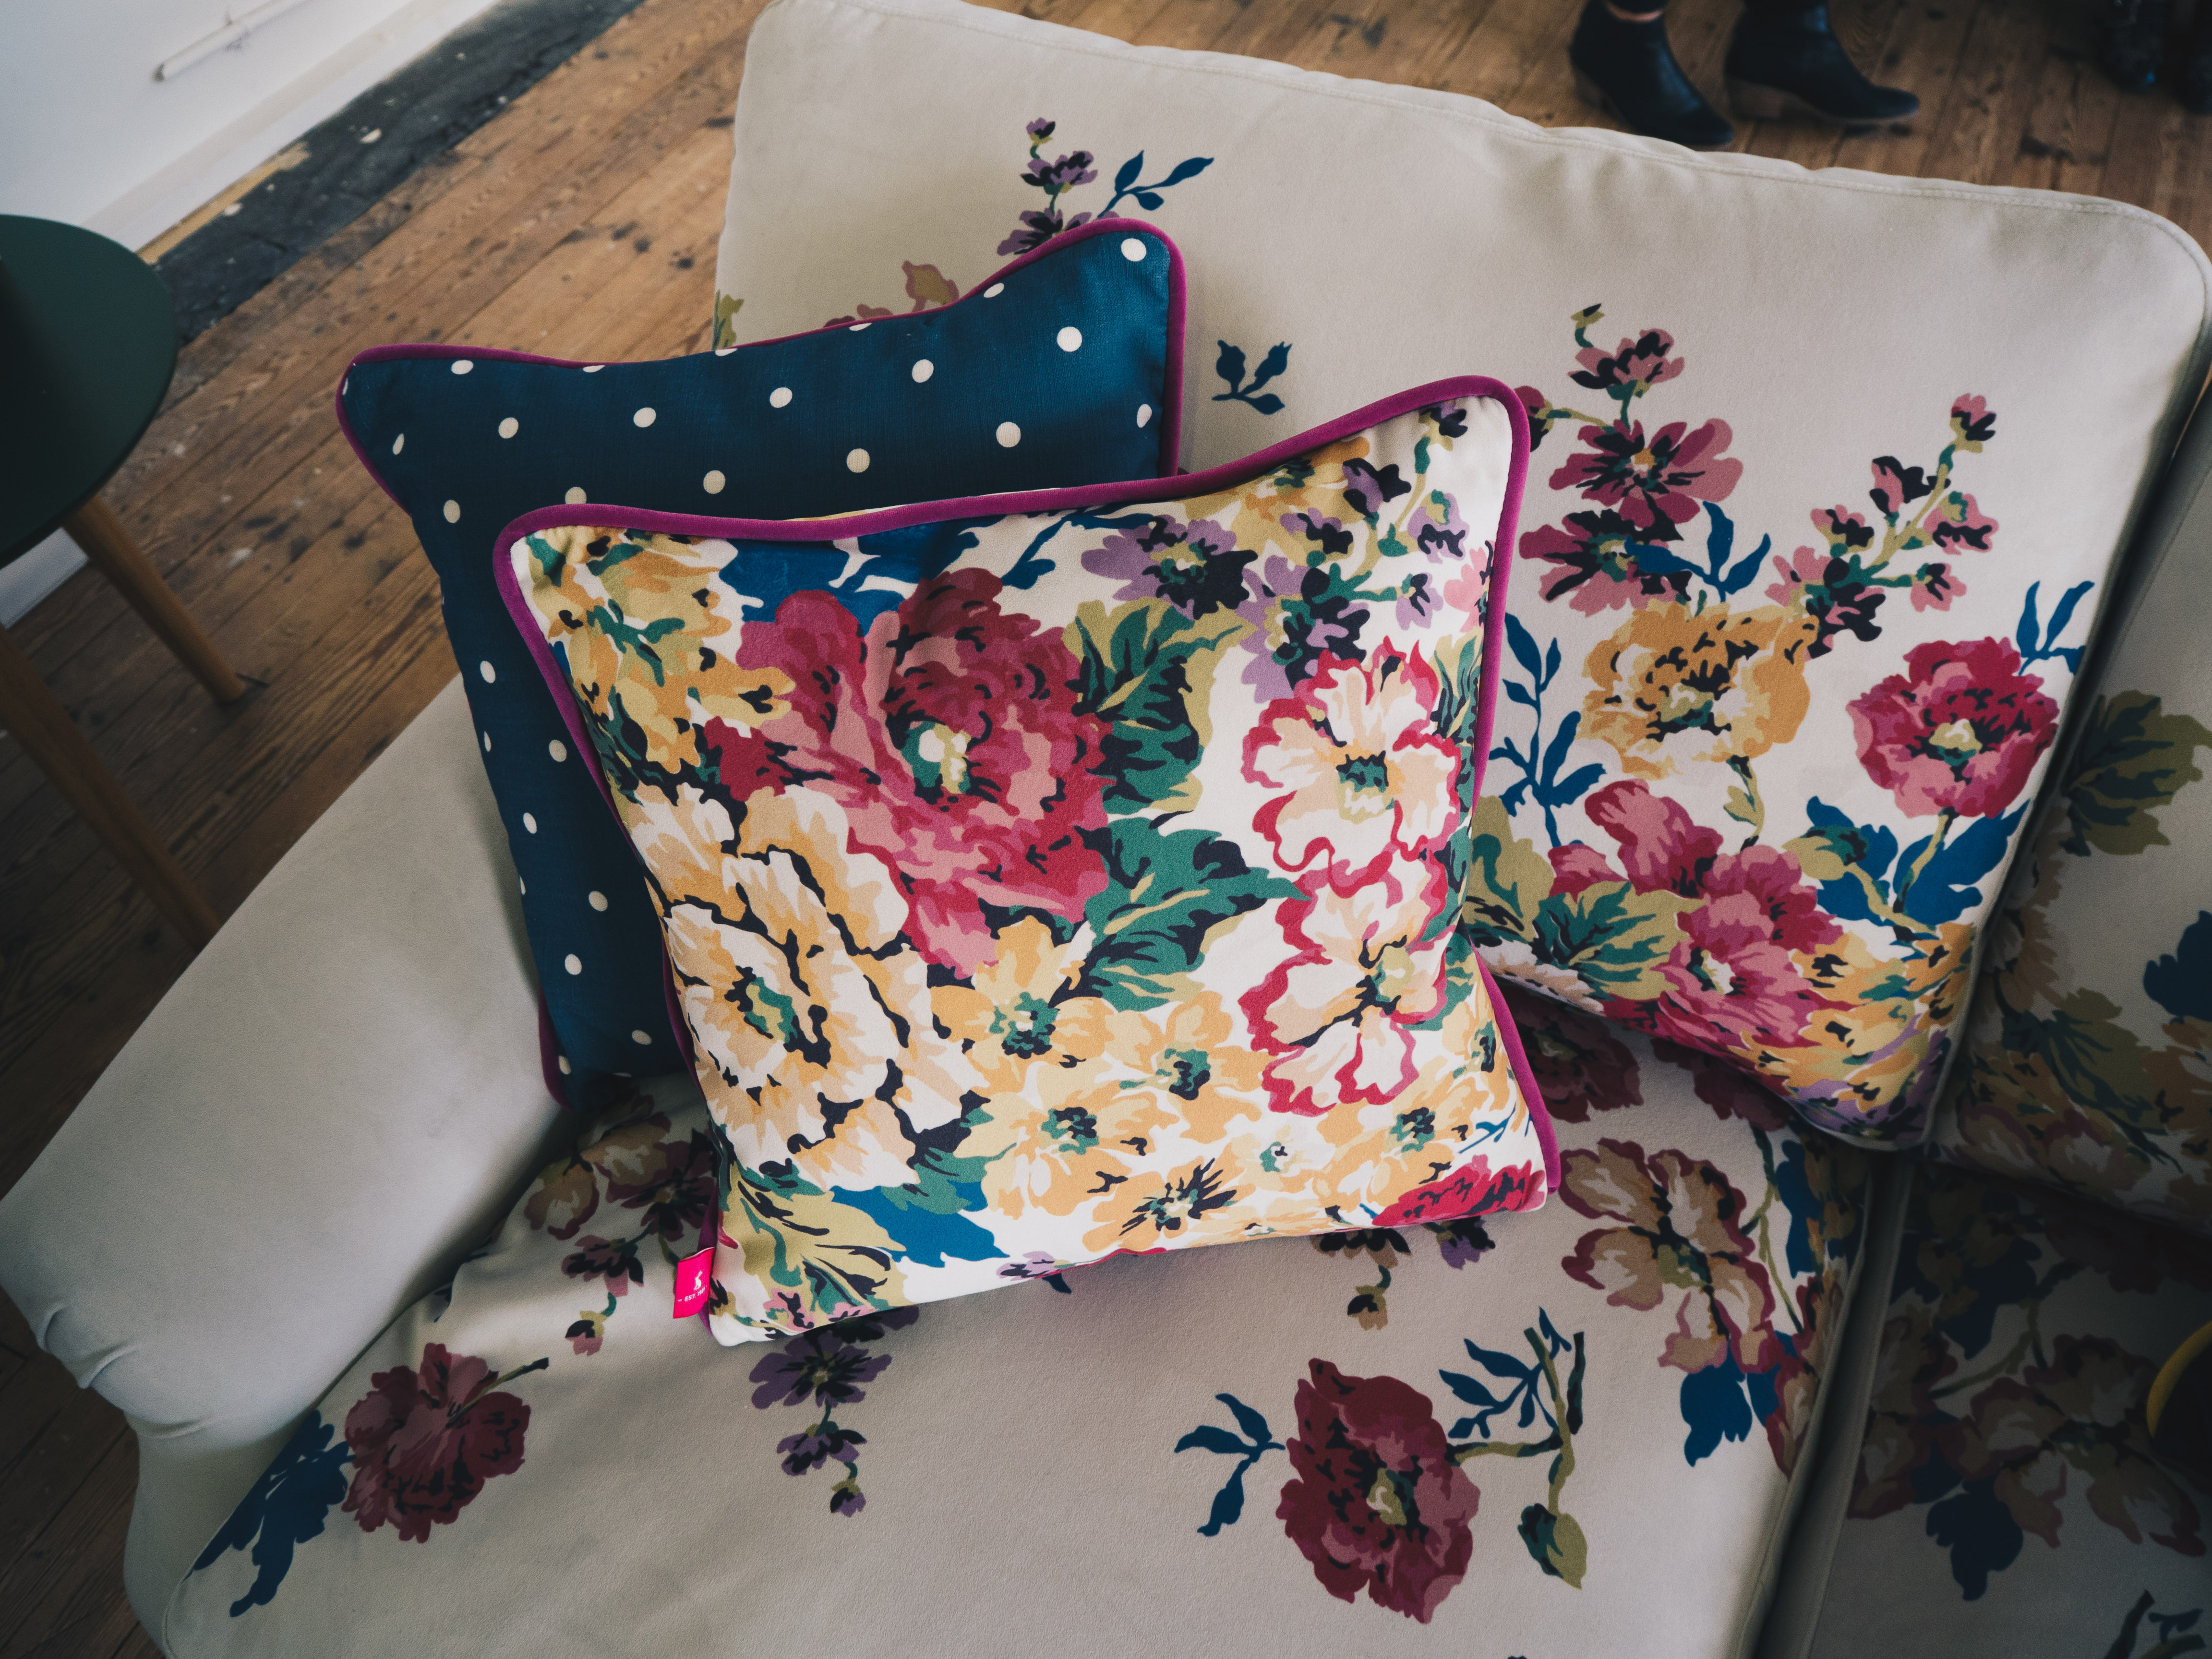 Awe Inspiring At Dfs For The Joules Dfs Collaboration Sneak Peek Rhyme Andrewgaddart Wooden Chair Designs For Living Room Andrewgaddartcom